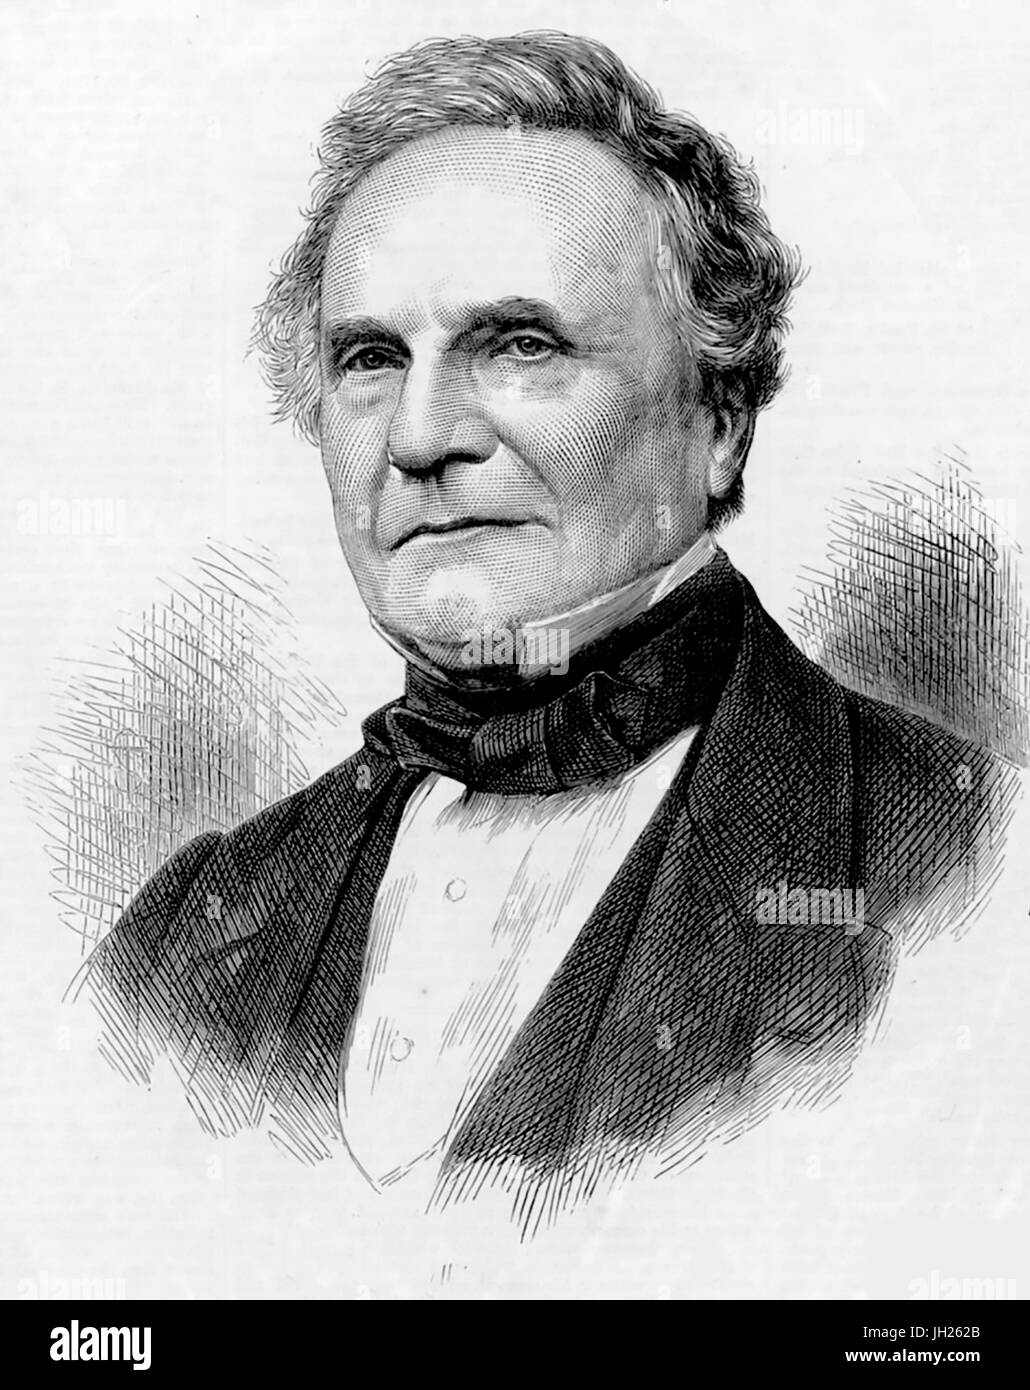 CHARLES BABBAGE (1791-1871) English mathematician and inventor whose concepts pre-dated computing - Stock Image